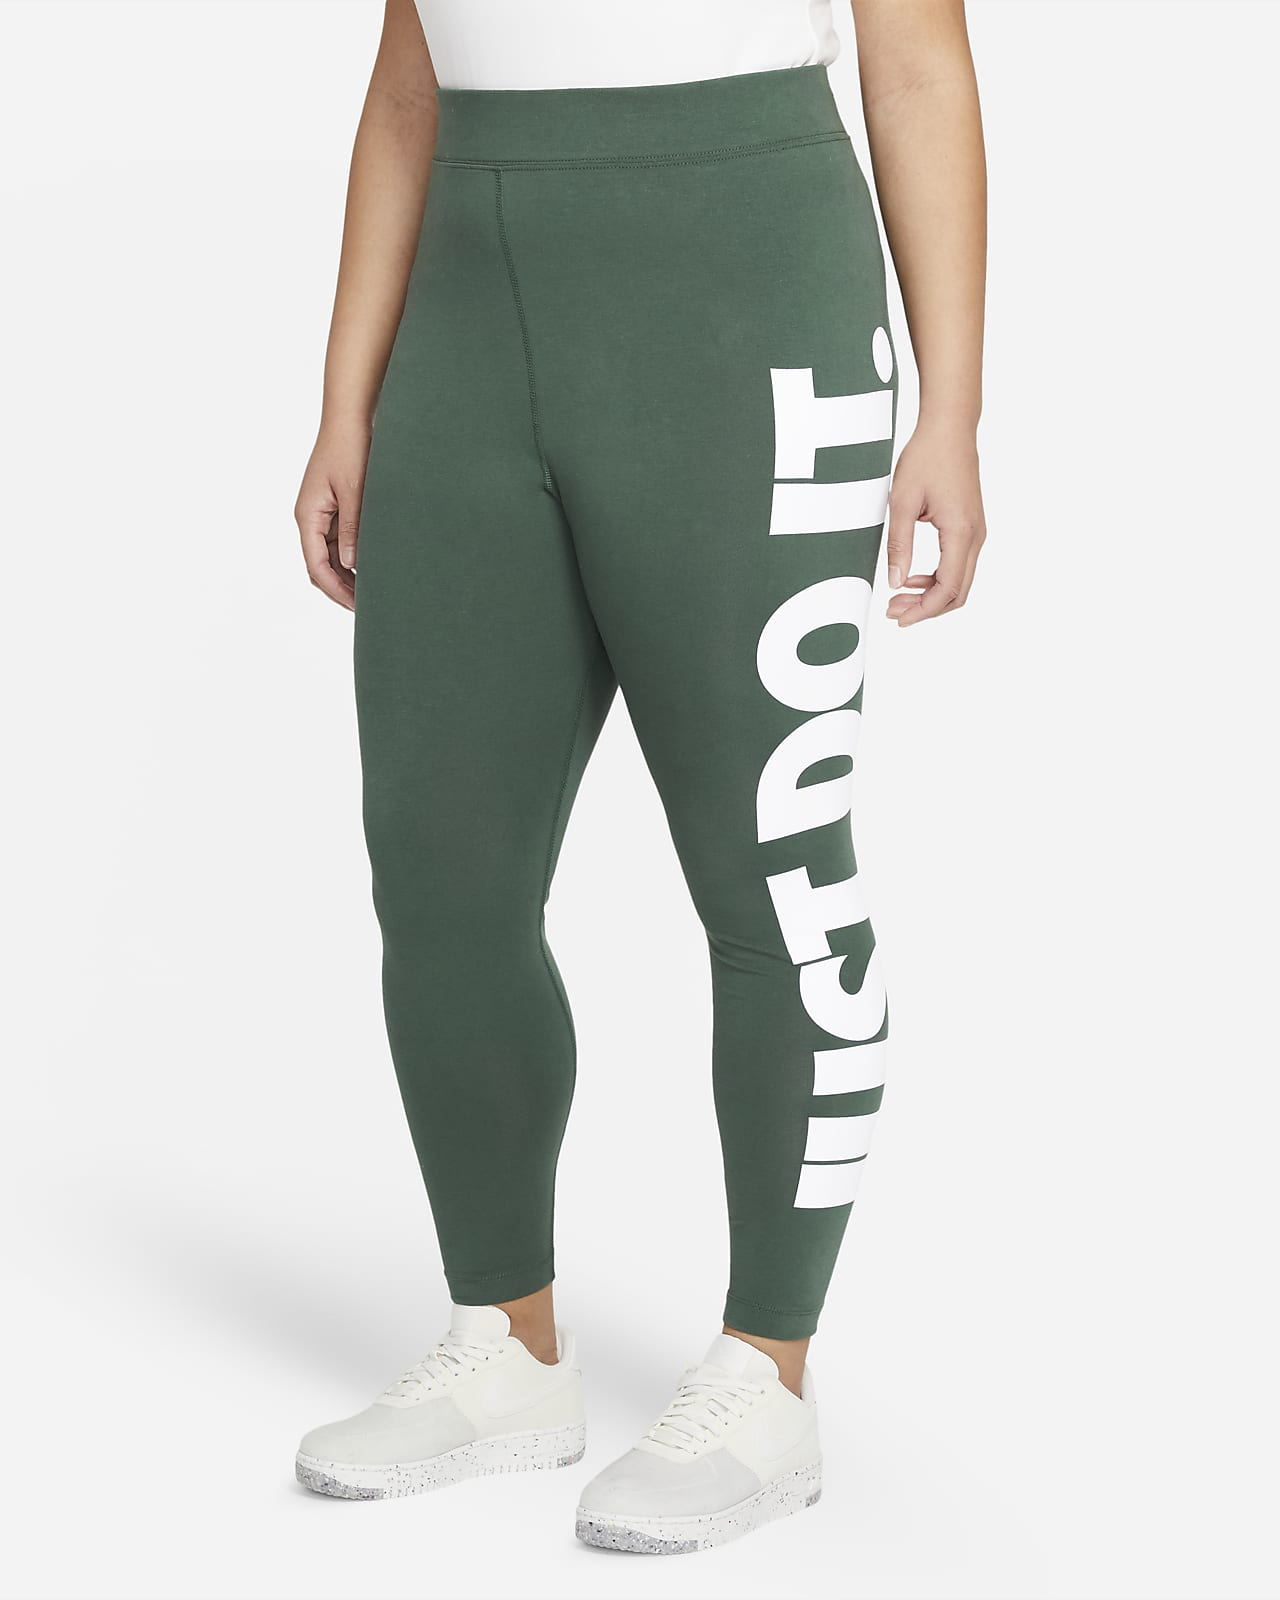 Nike Sportswear Essential Women's High-Rise Leggings (Plus Size)